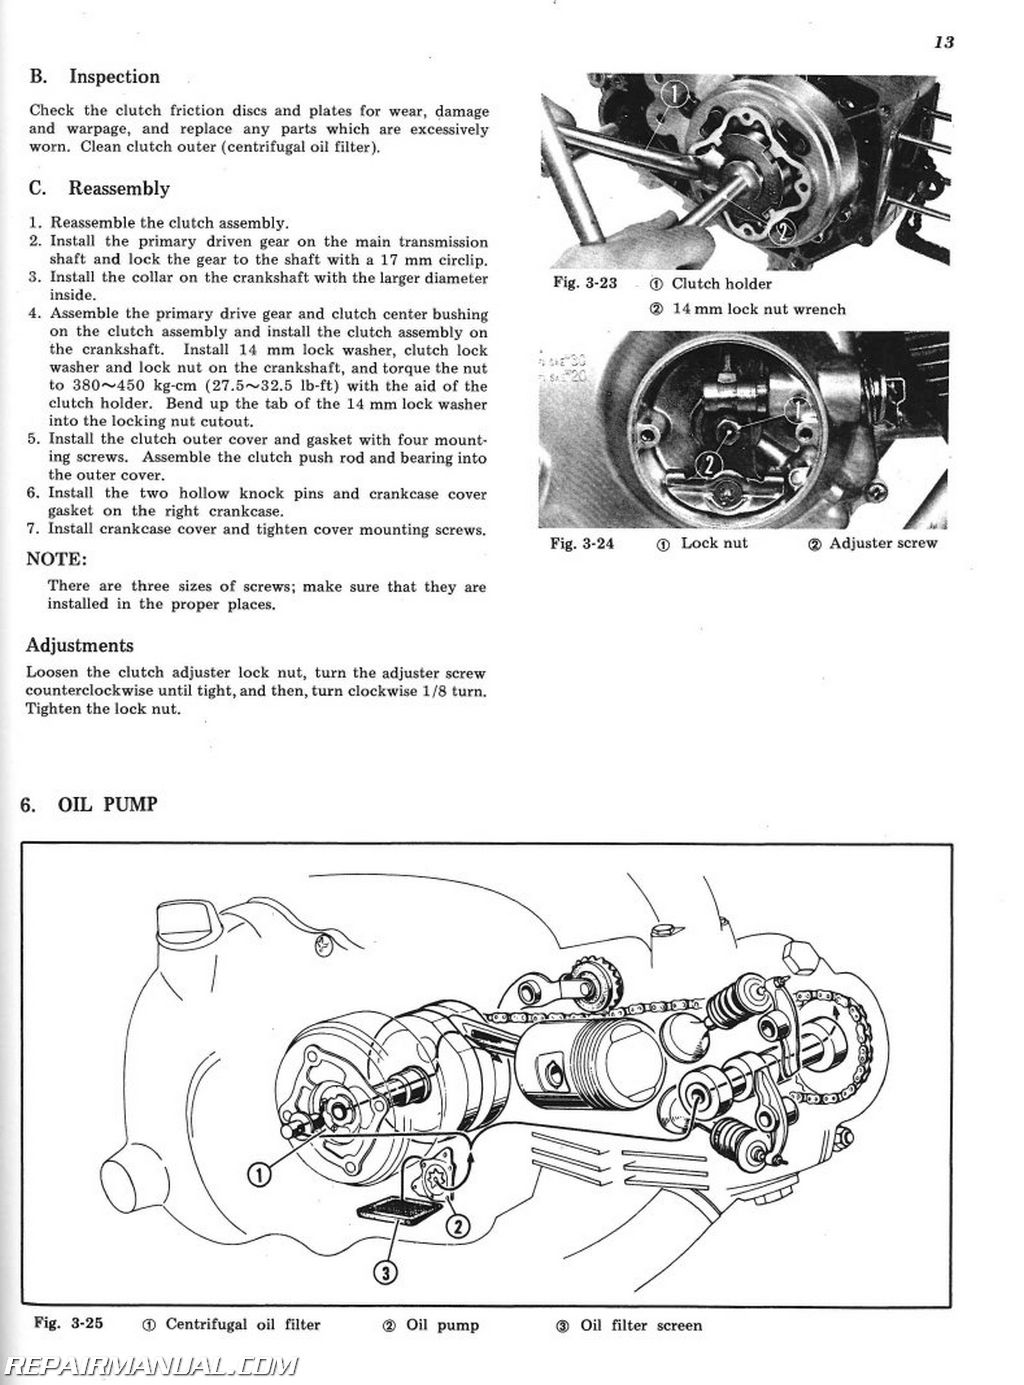 Honda Sl70 Wiring Diagram For Light Switch 1971 750 Four Electricity 1976 Xl70 Motorcycle Service Manual Rh Repairmanual Com Monkey Bike Cx500